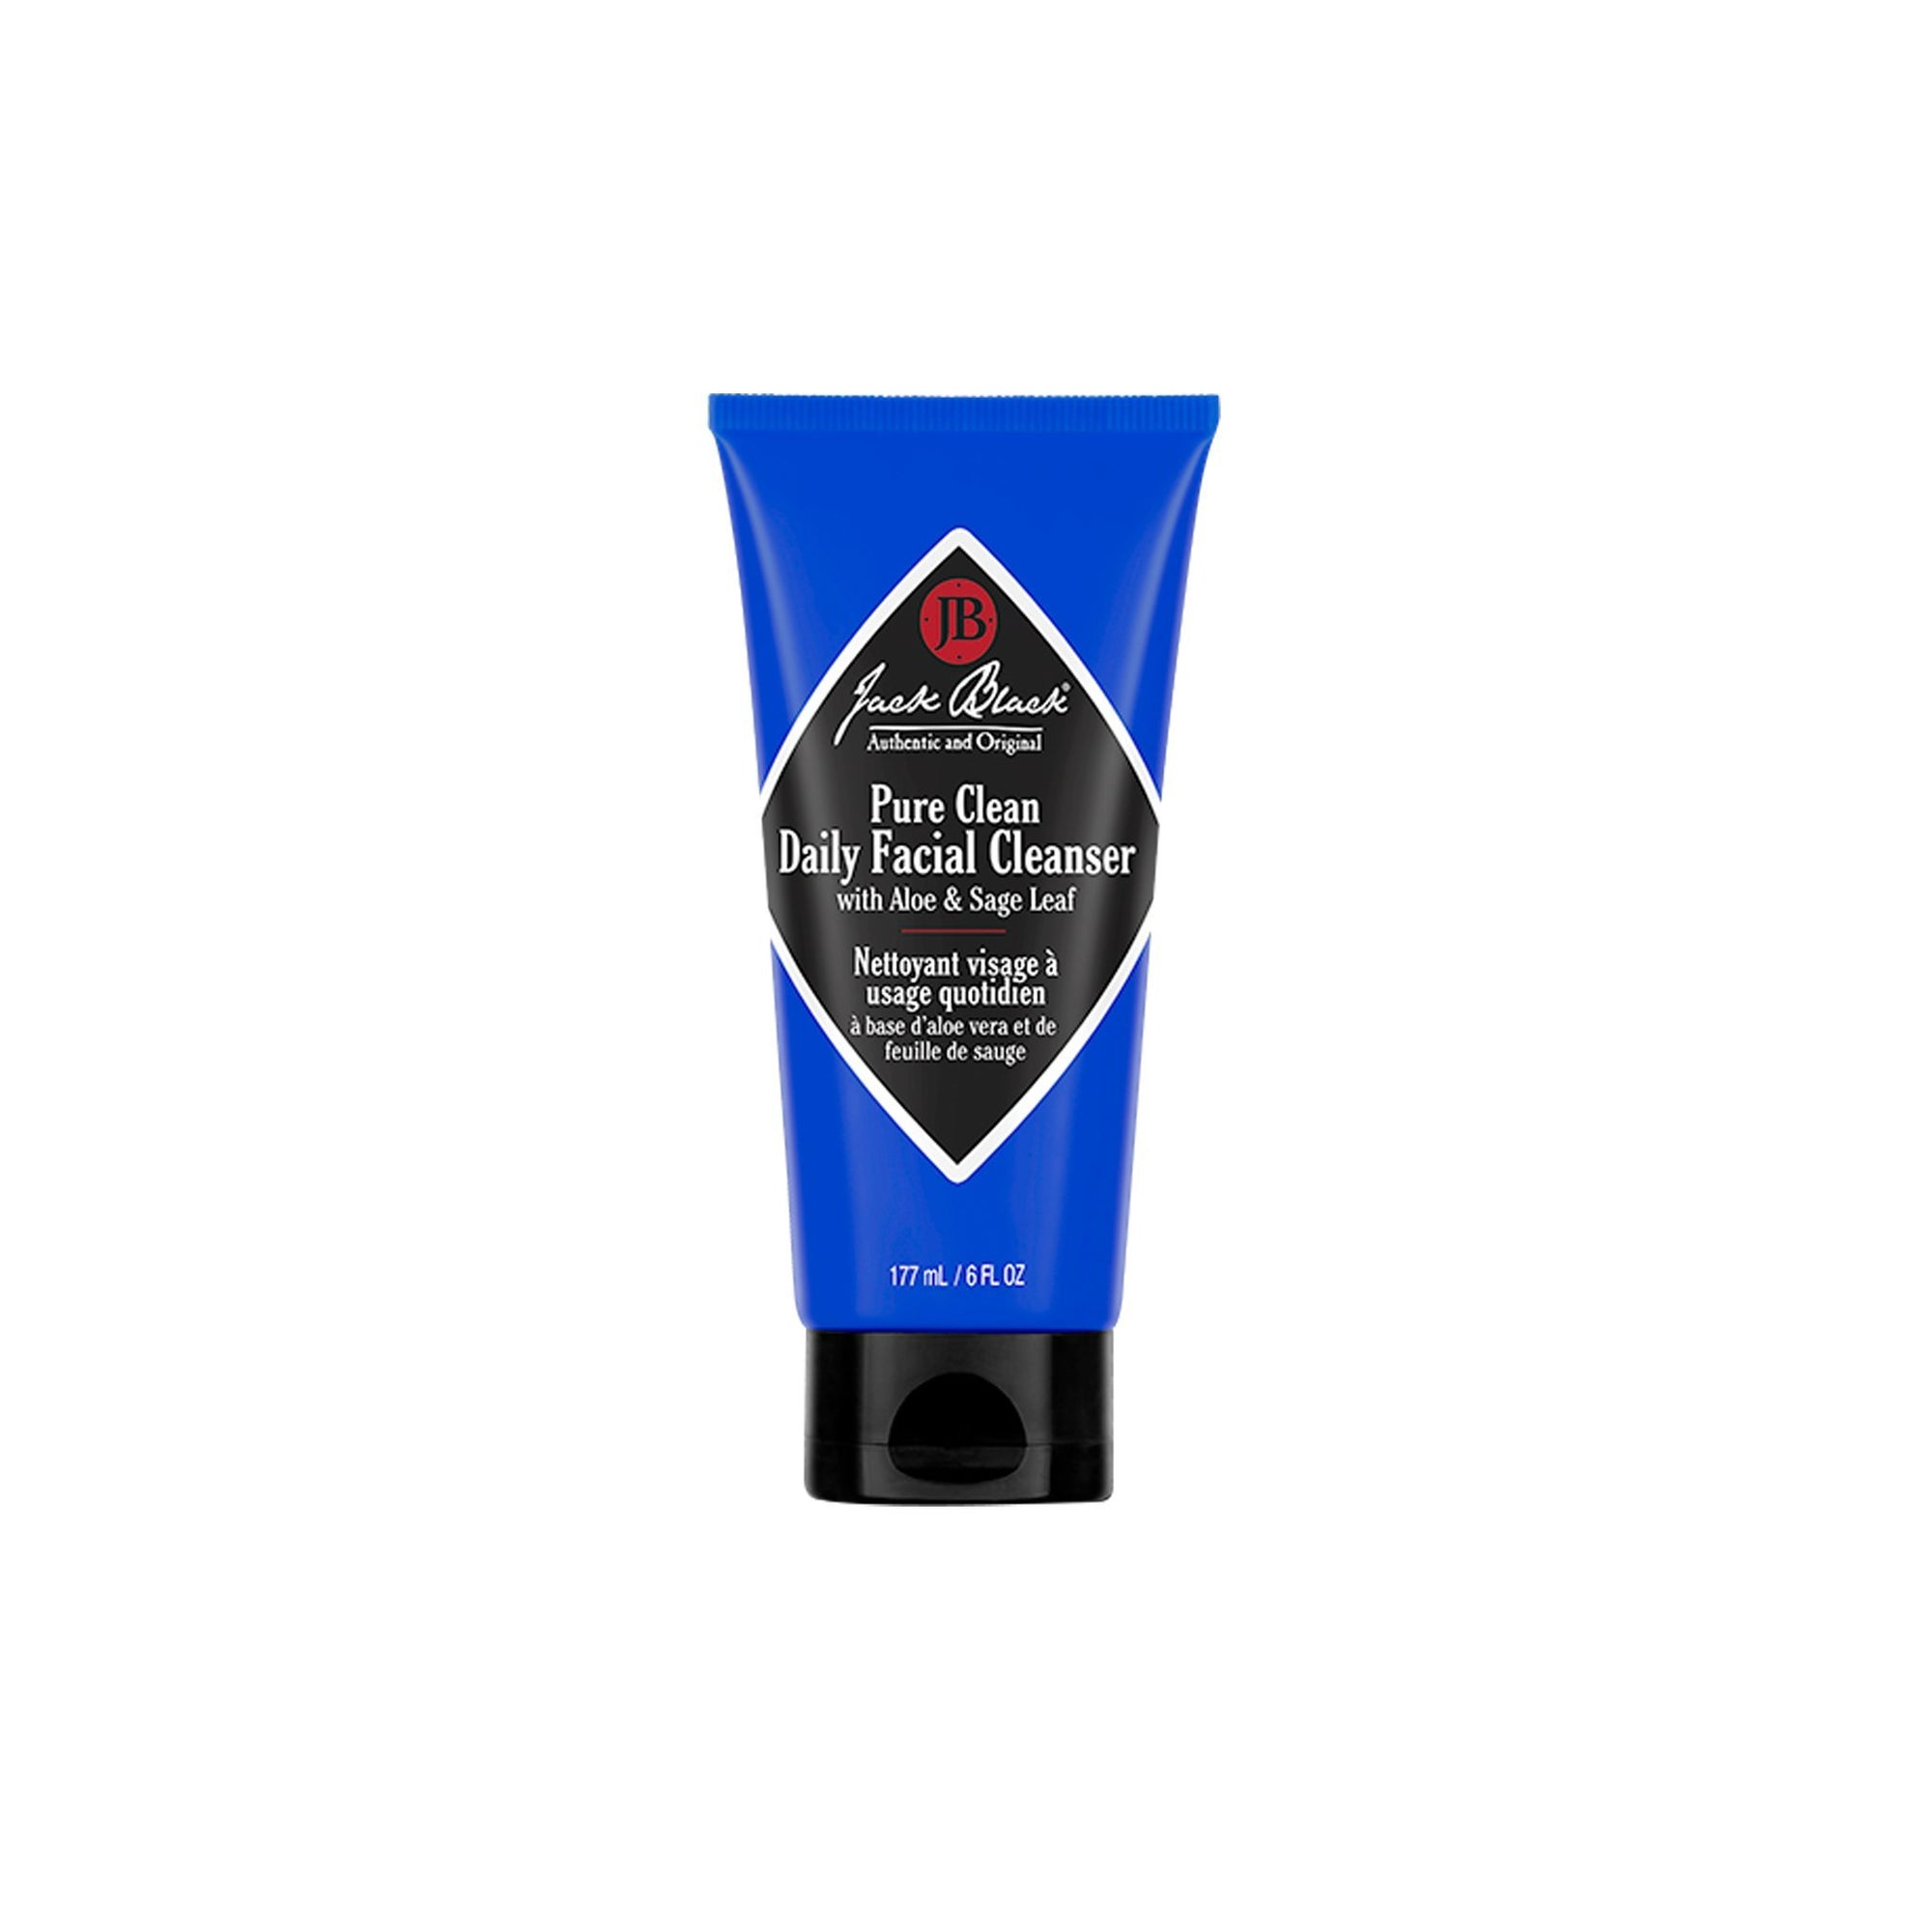 Jack Black Pure Clean Daily Facial Cleanser 117ml